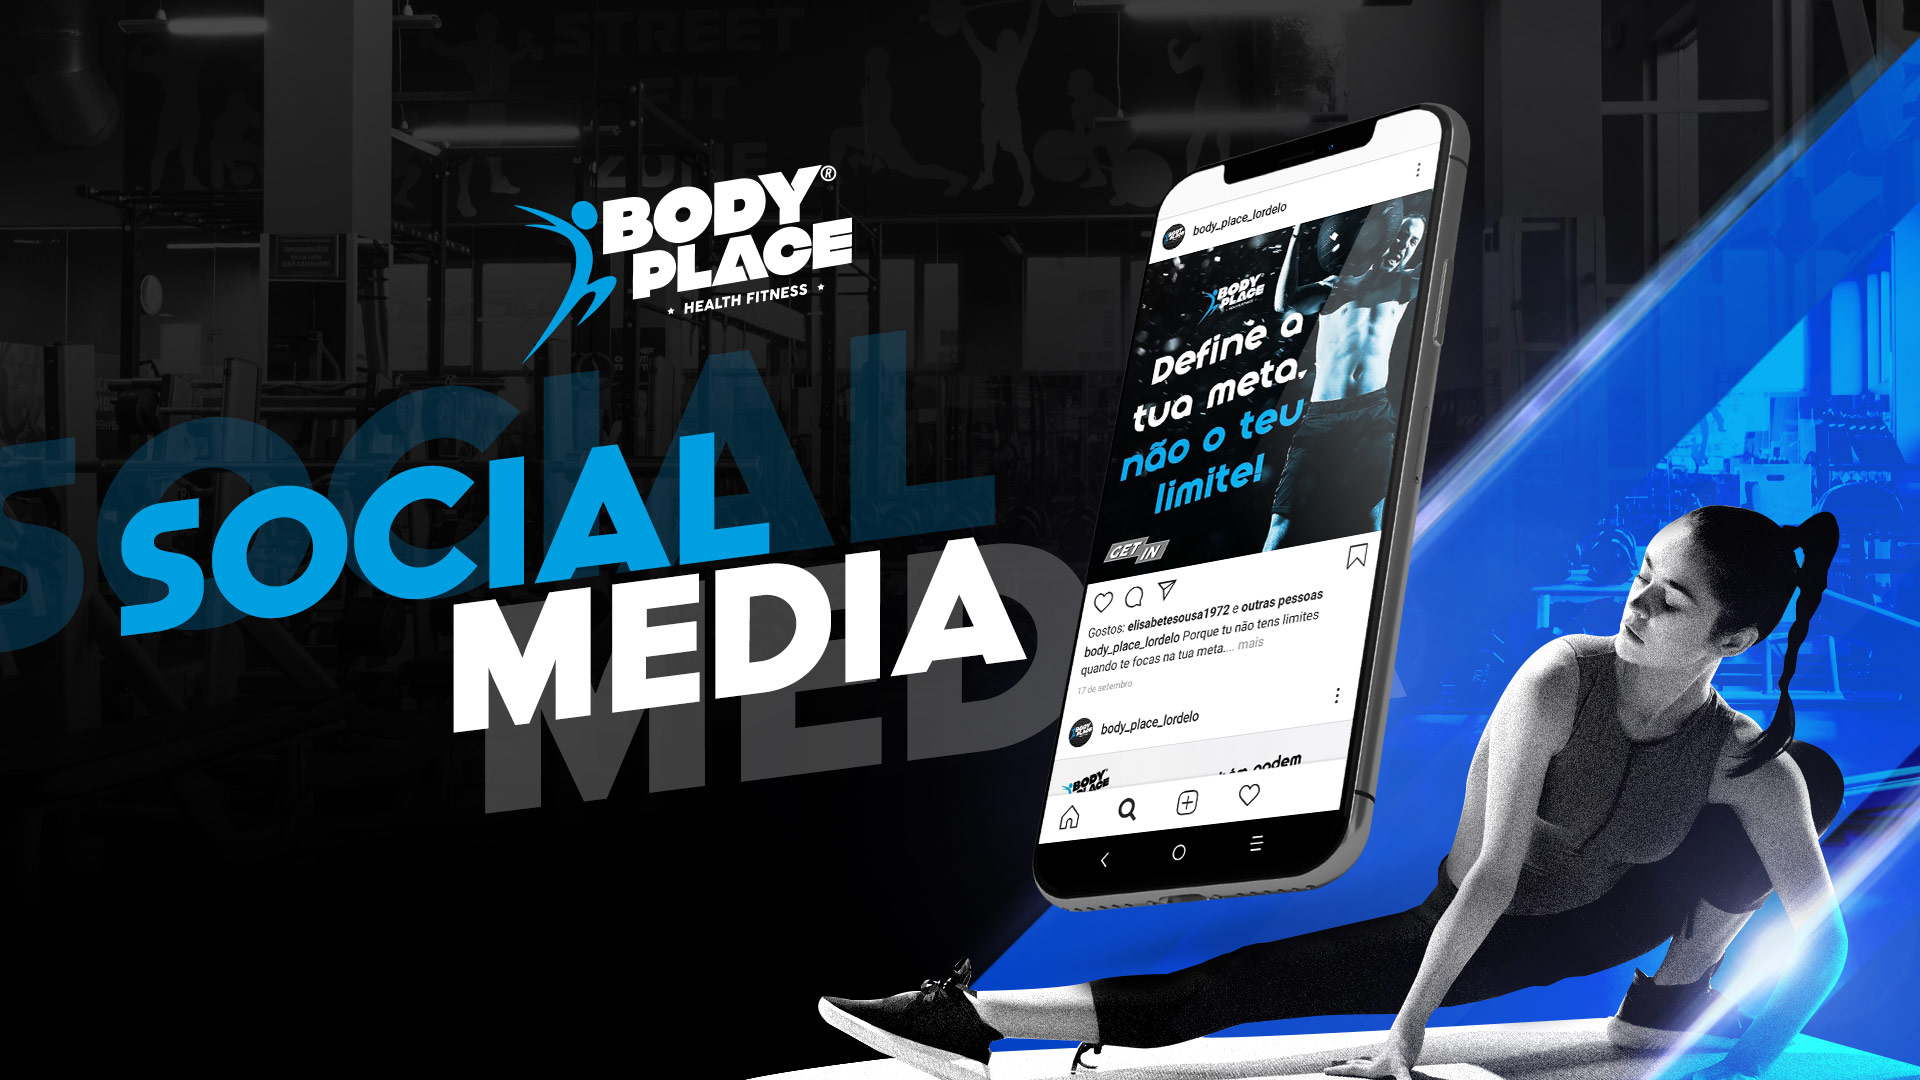 BodyPlace Social Media Portfólio